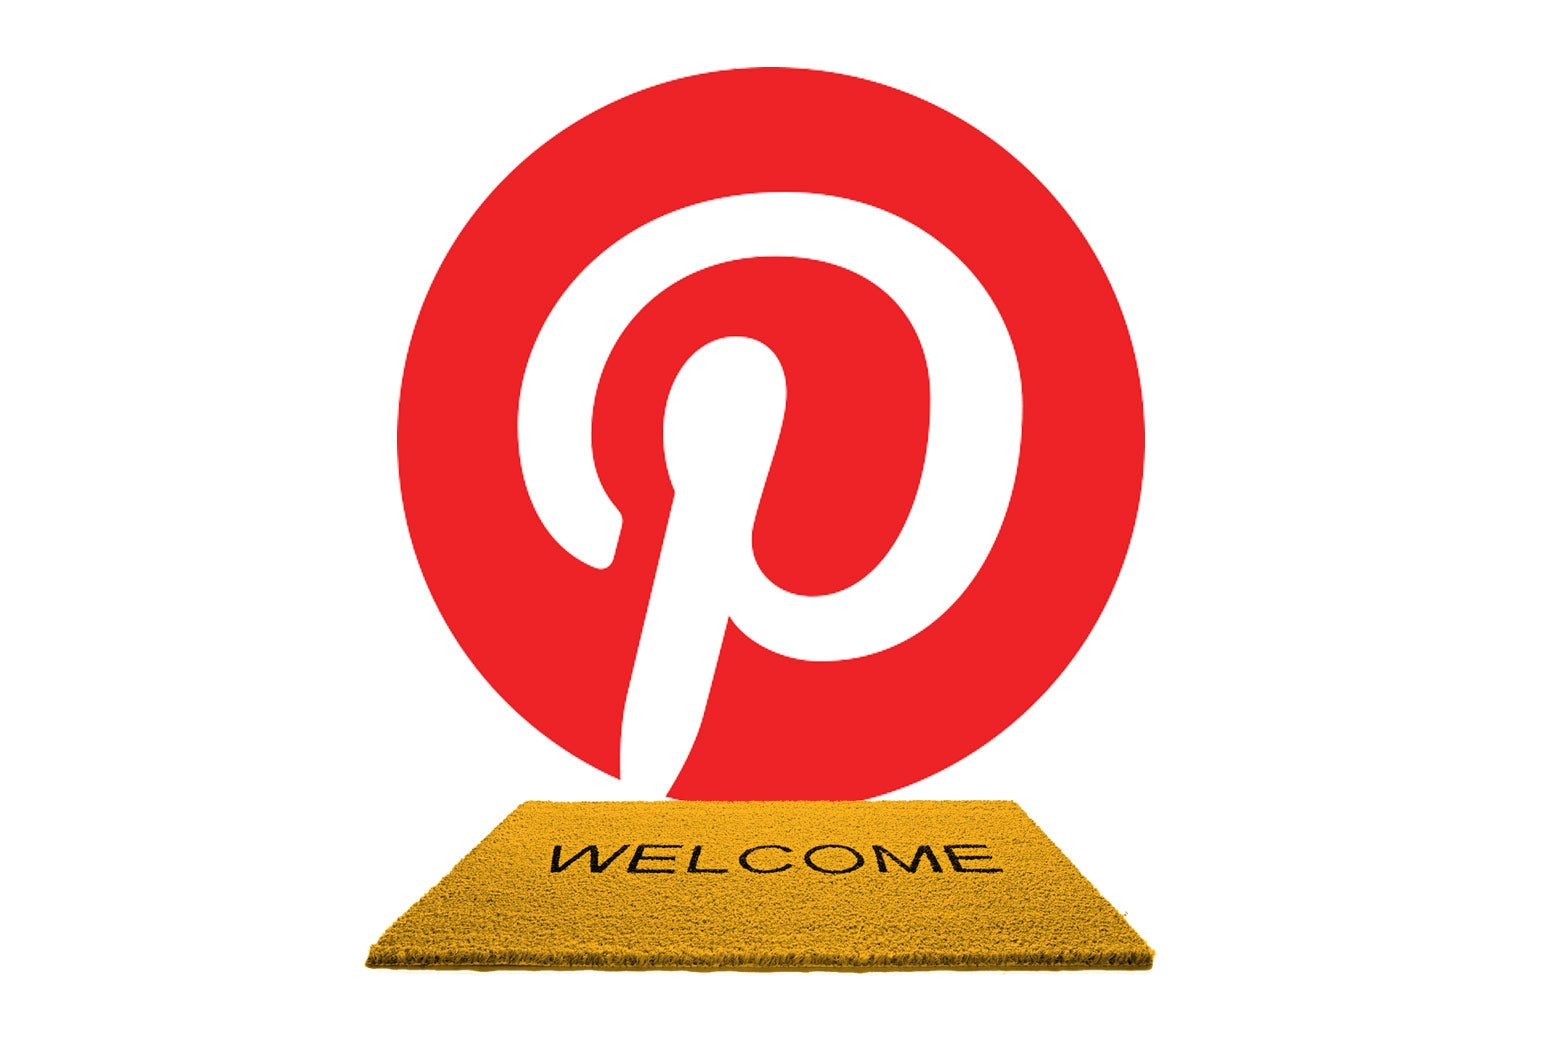 Welcome mat in front of Pinterest logo.